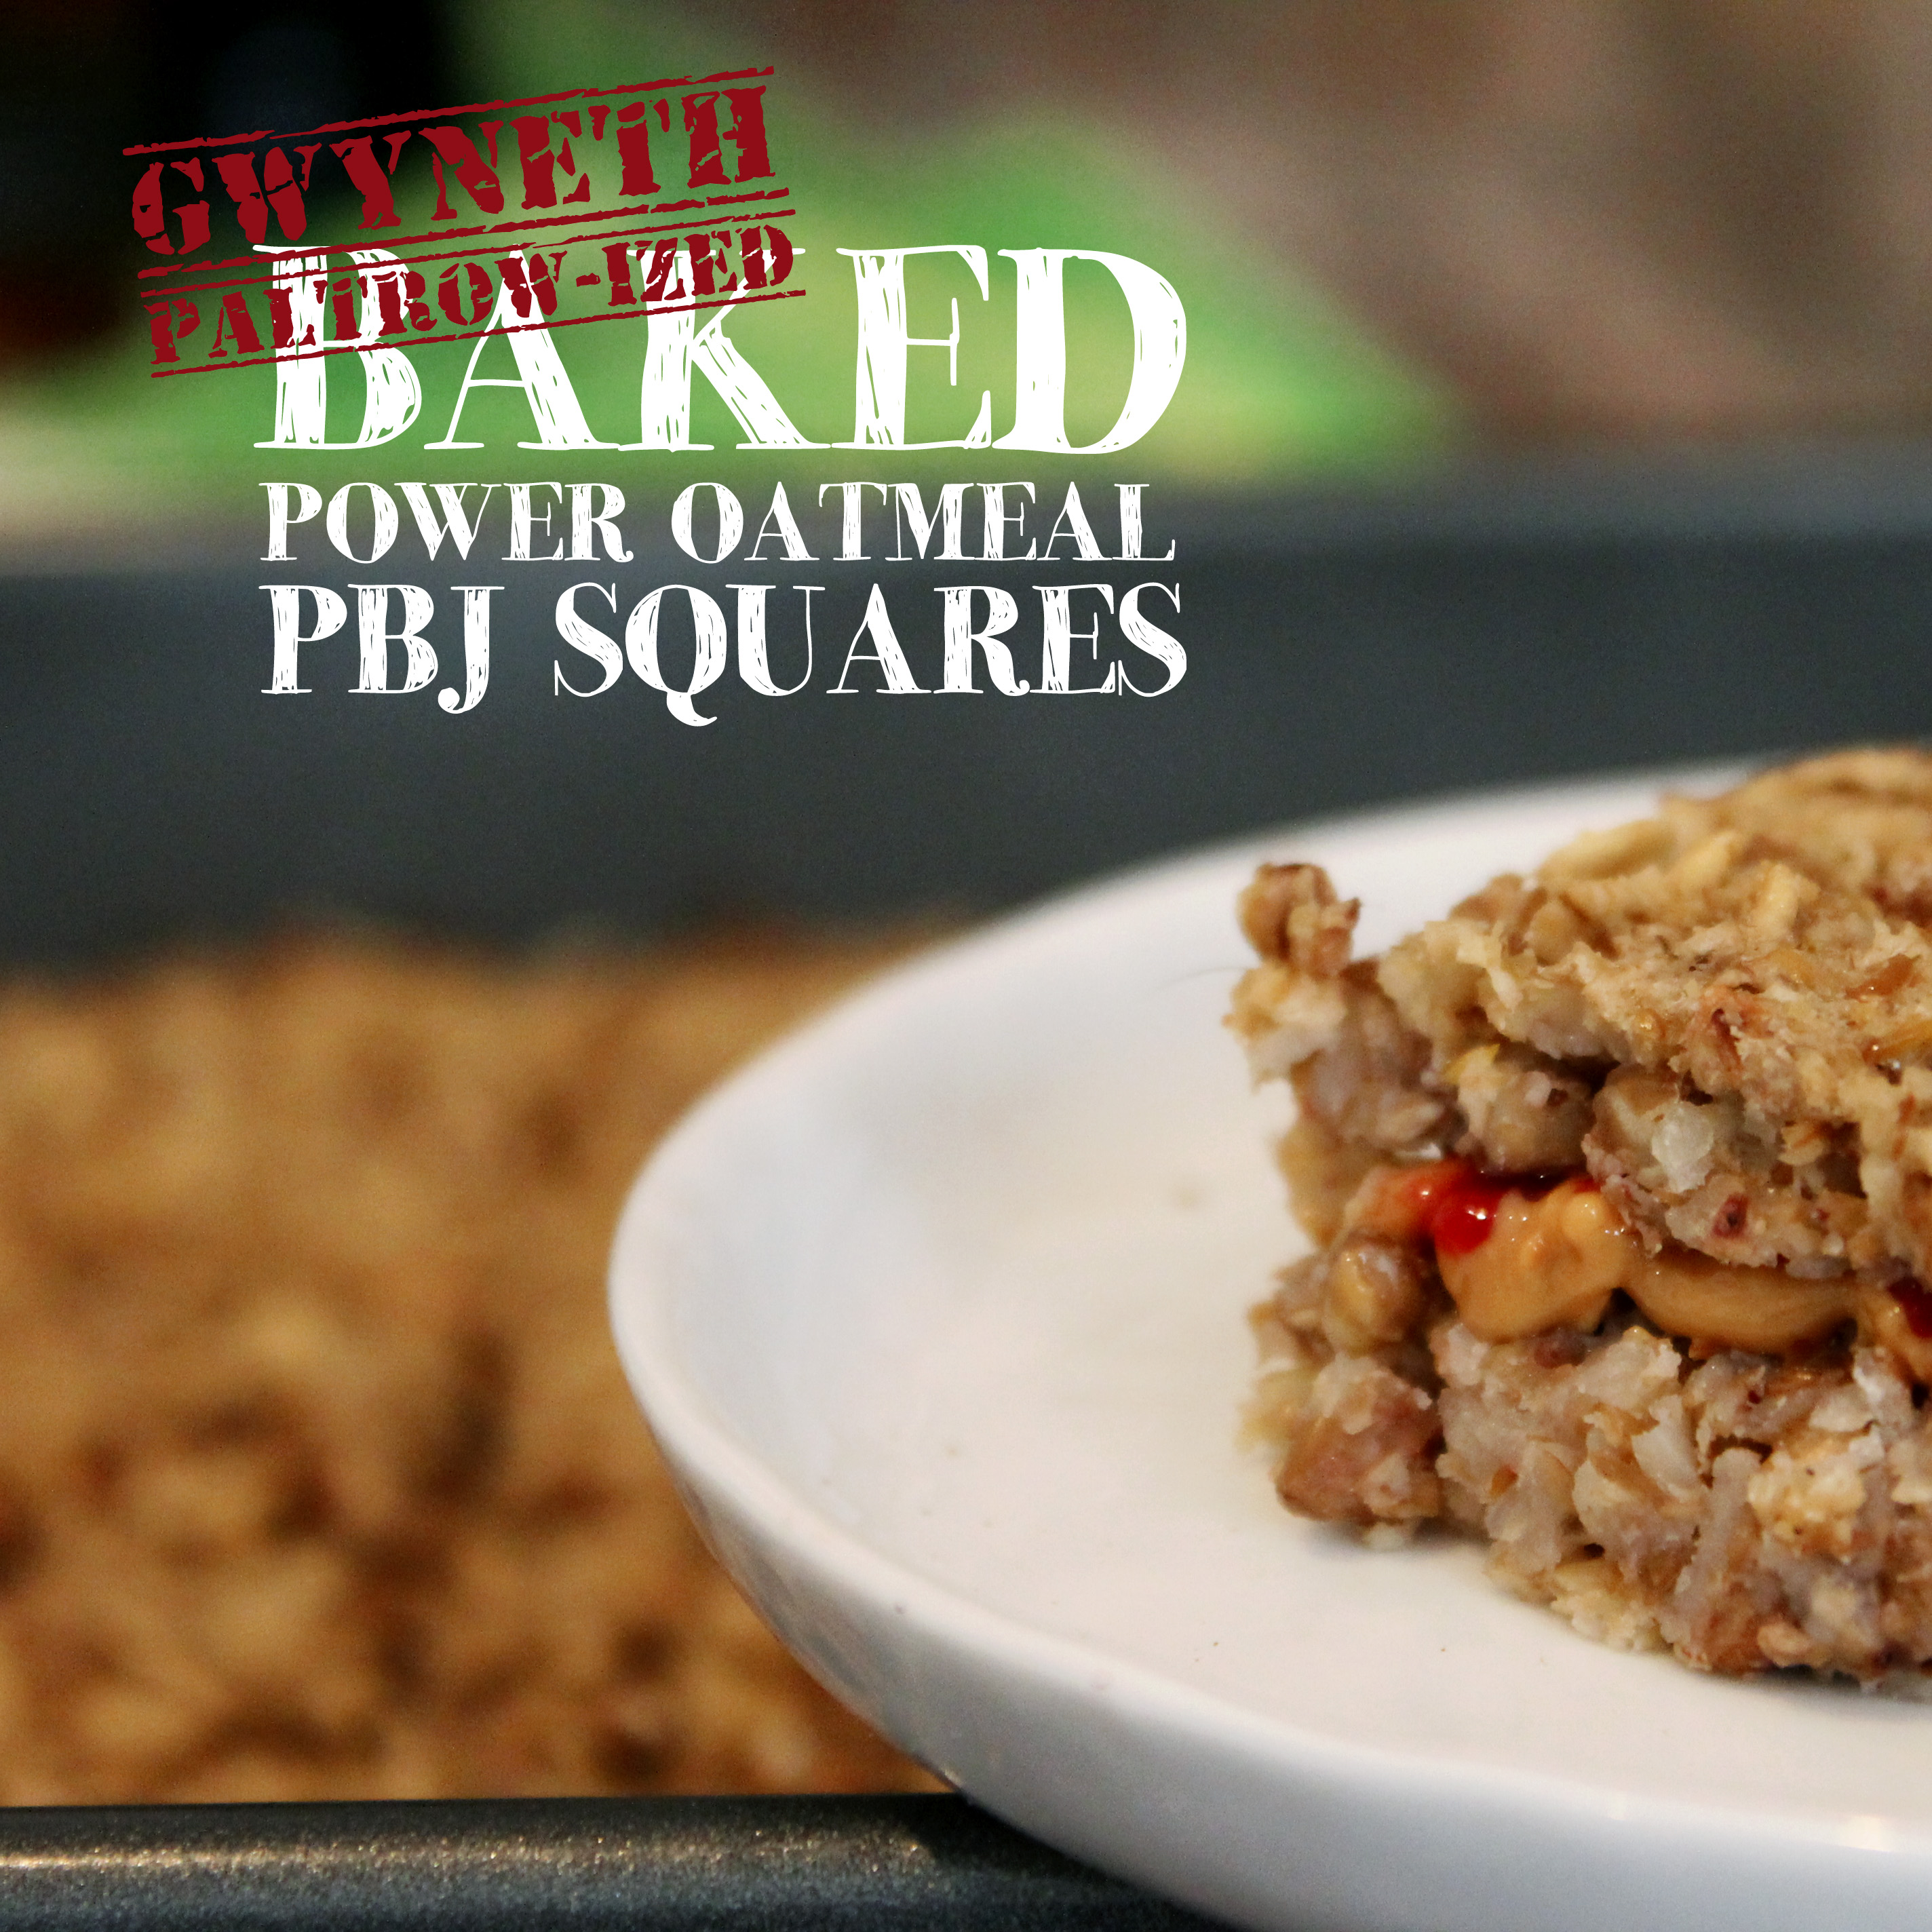 gwyneth paltrow baked power oatmeal pbj squares